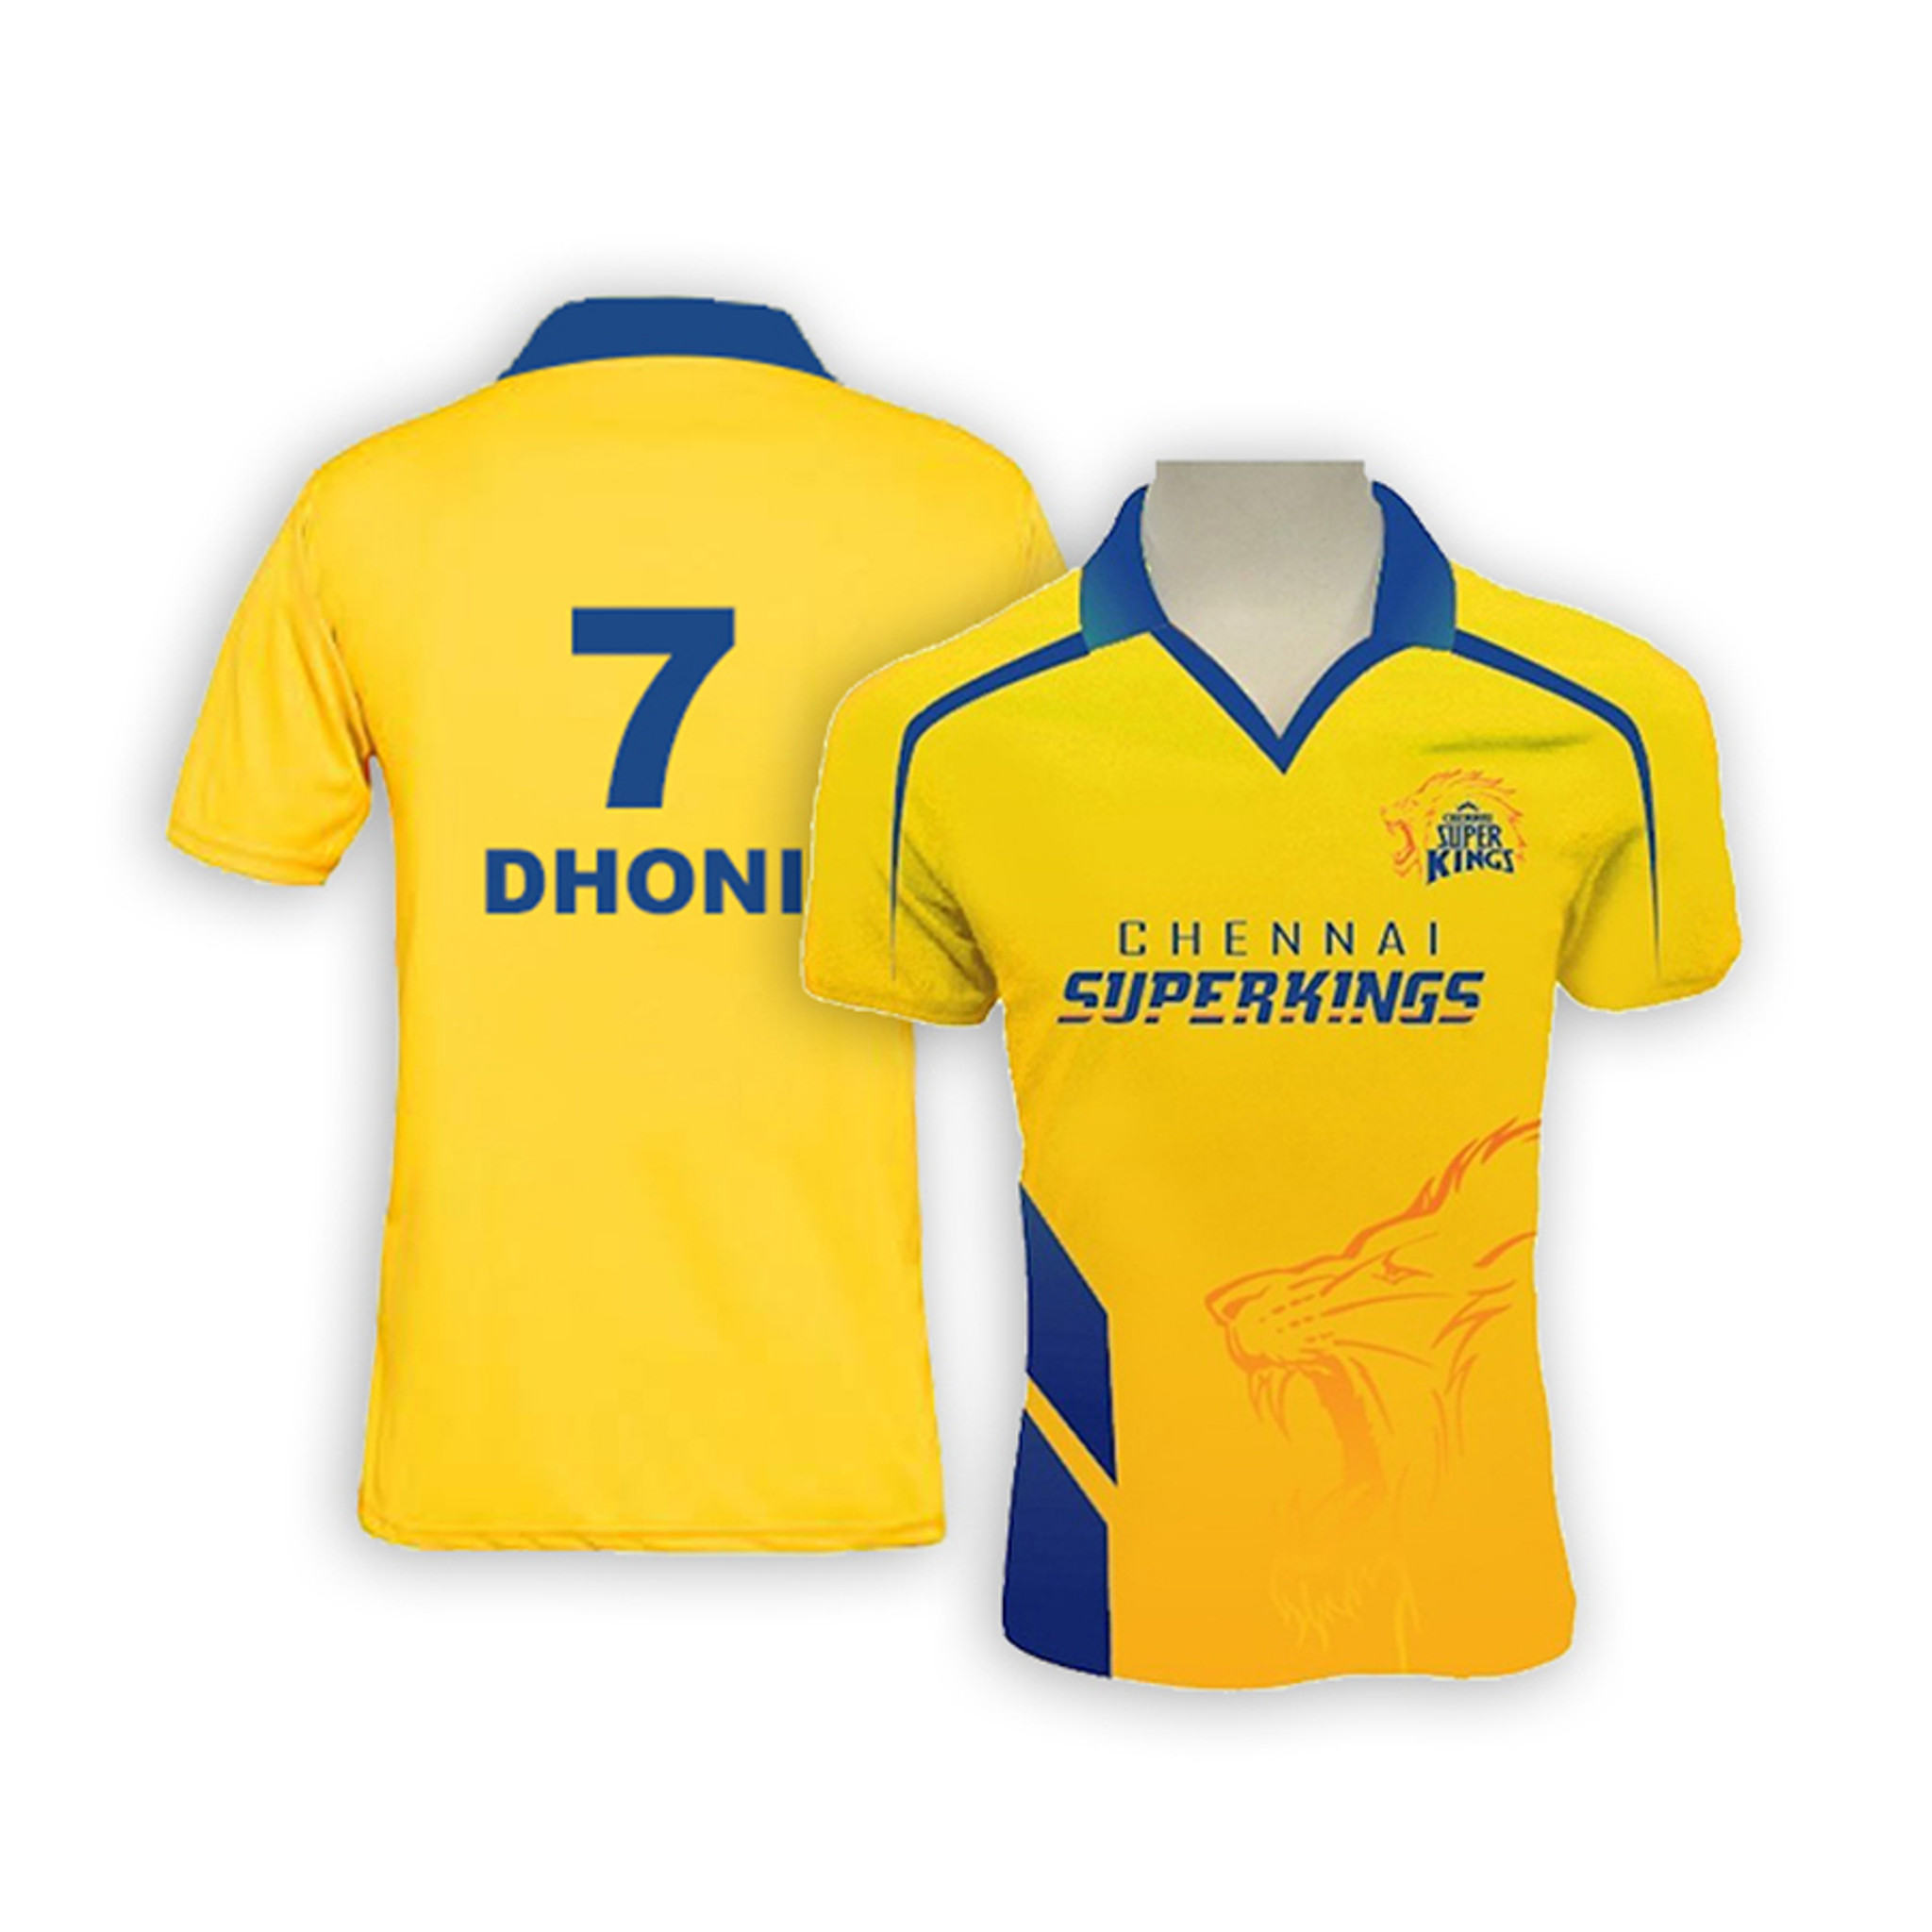 adb75351 ... Chennai Super Kings Bleed Yellow Jersey Dhoni #7 - Front and Back